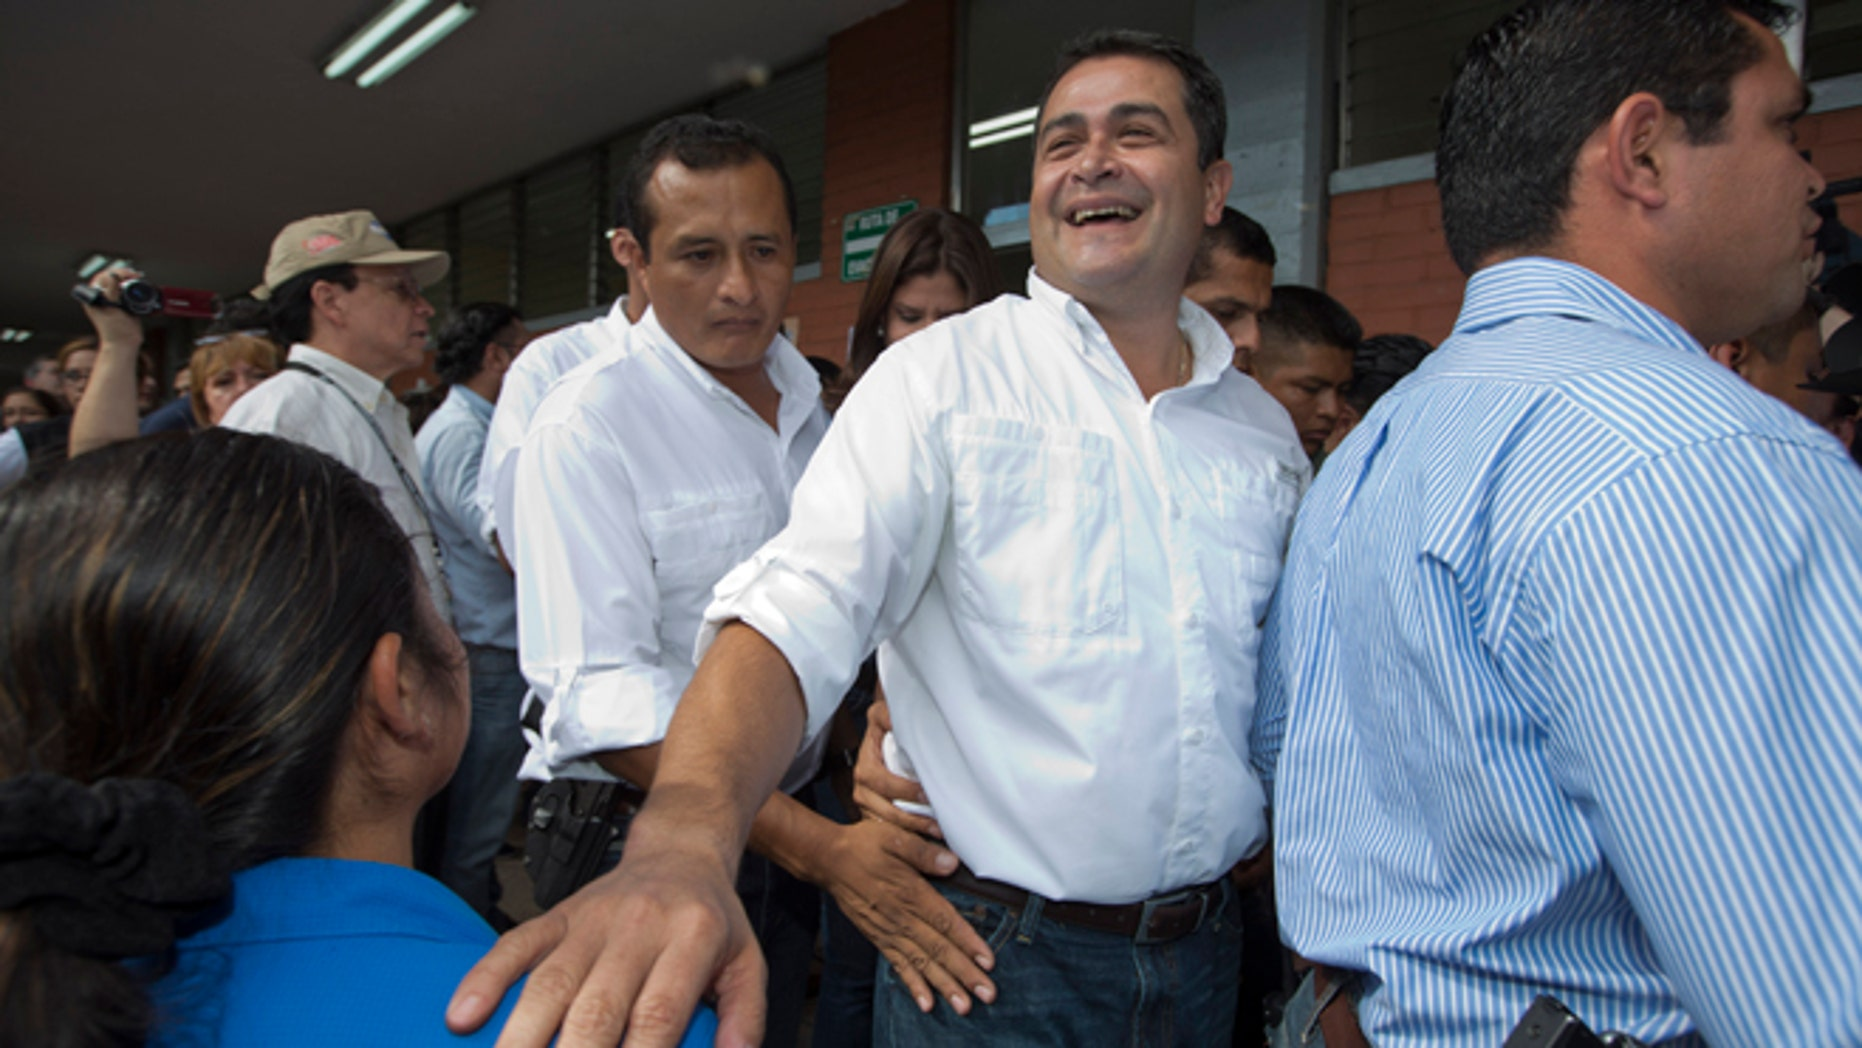 FILE - In this Nov. 24, 2013, file photo, then National Party Presidential Candidate Juan Orlando Hernandez, second from right, greets supporters at a polling station in Tegucigalpa, Honduras. Now as President of Honduras, Hernandez has acknowledged Wednesday, June 3, 2015, that his election campaign received financing from businesspeople linked to a social security embezzlement and graft scandal that has sparked large protests, but denied any personal involvement. (AP Photo/Moises Castillo, File)